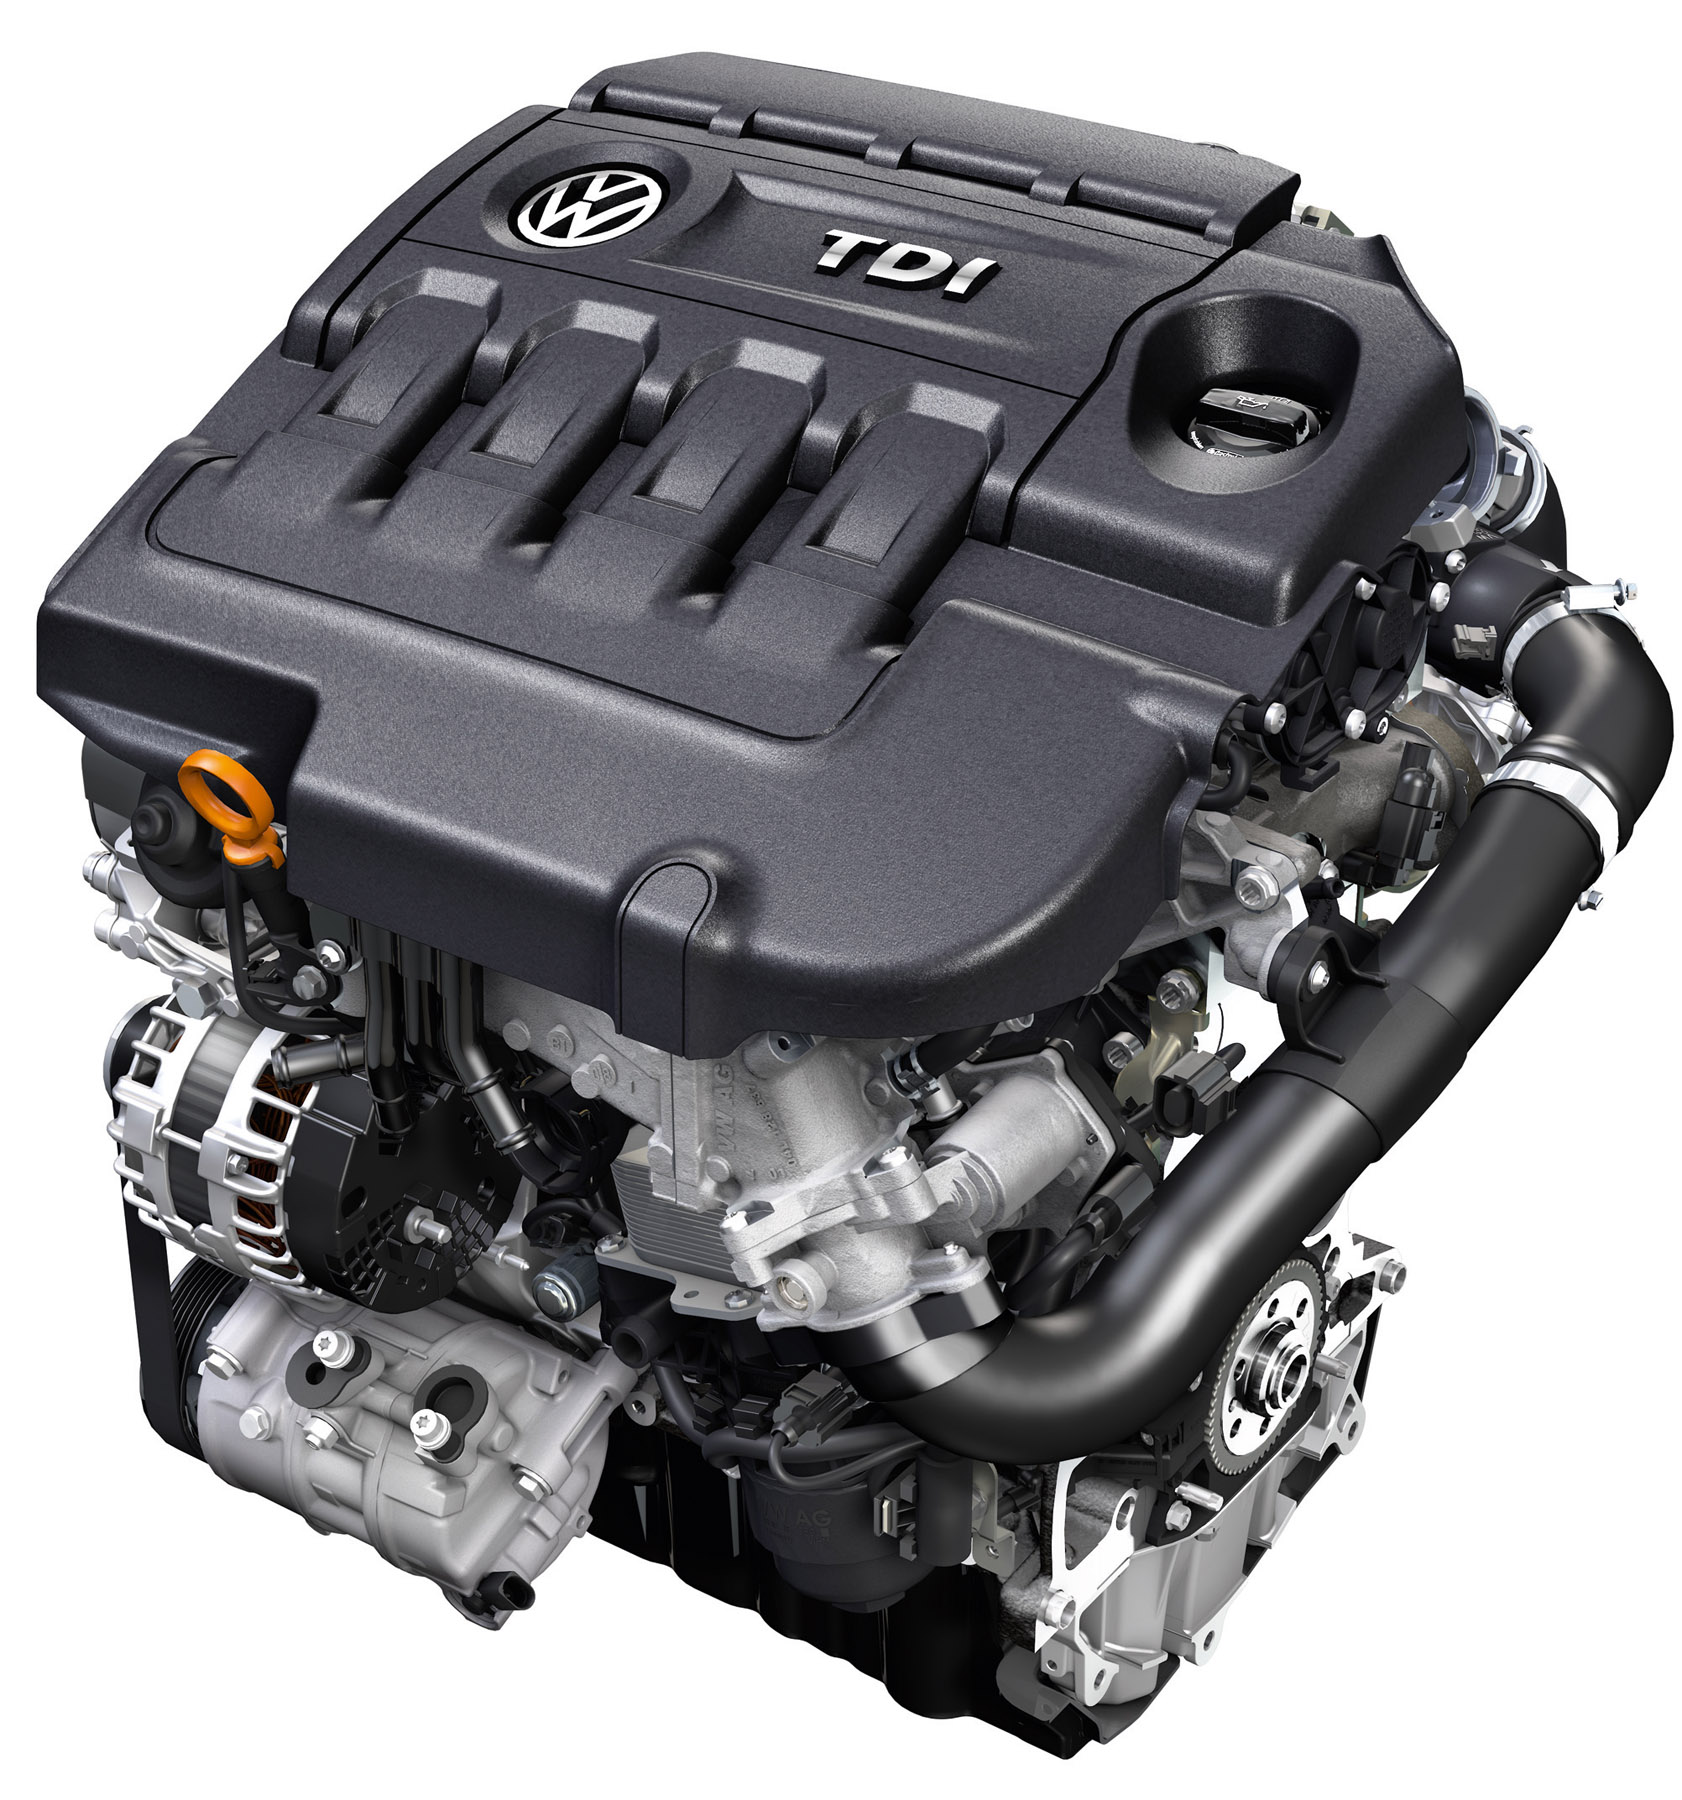 a diesel engine benz your car good sports mercedes engines is for